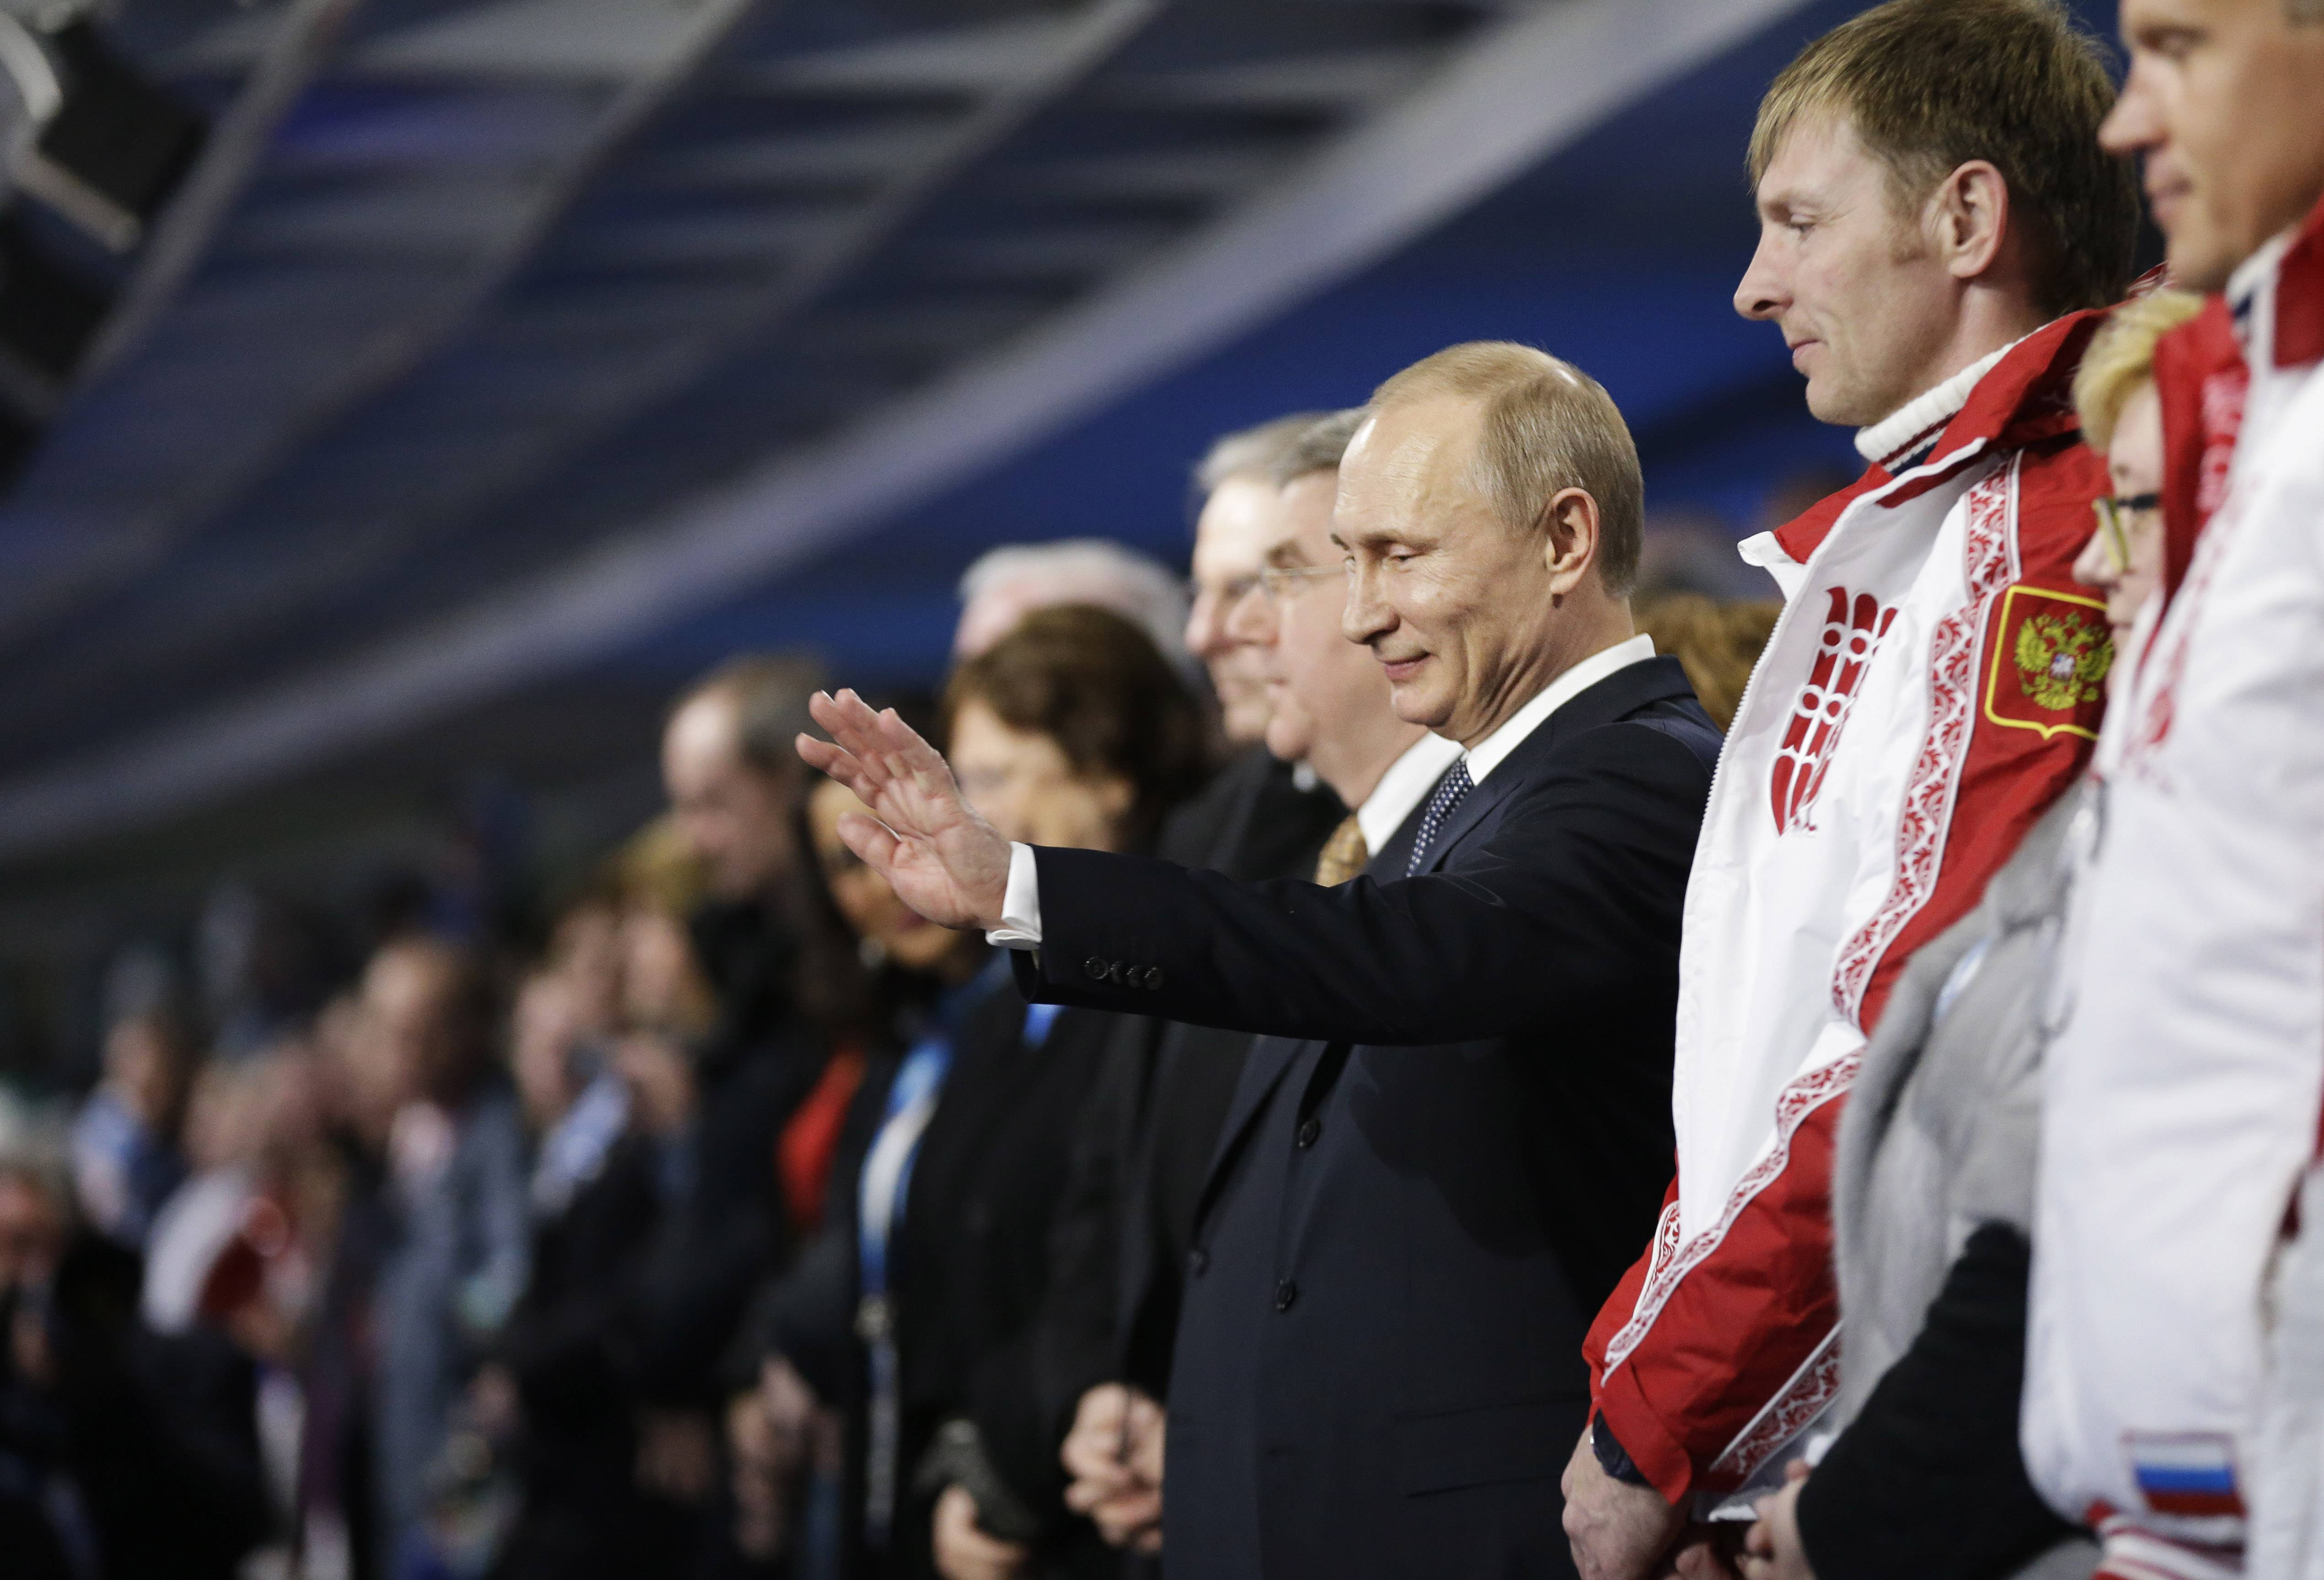 Russian President Vladimir Putin acknowledges the applause of the crowd as he is introduced at the closing ceremony of the 2014 Winter Olympics, Sunday, Feb. 23, 2014, in Sochi, Russia.